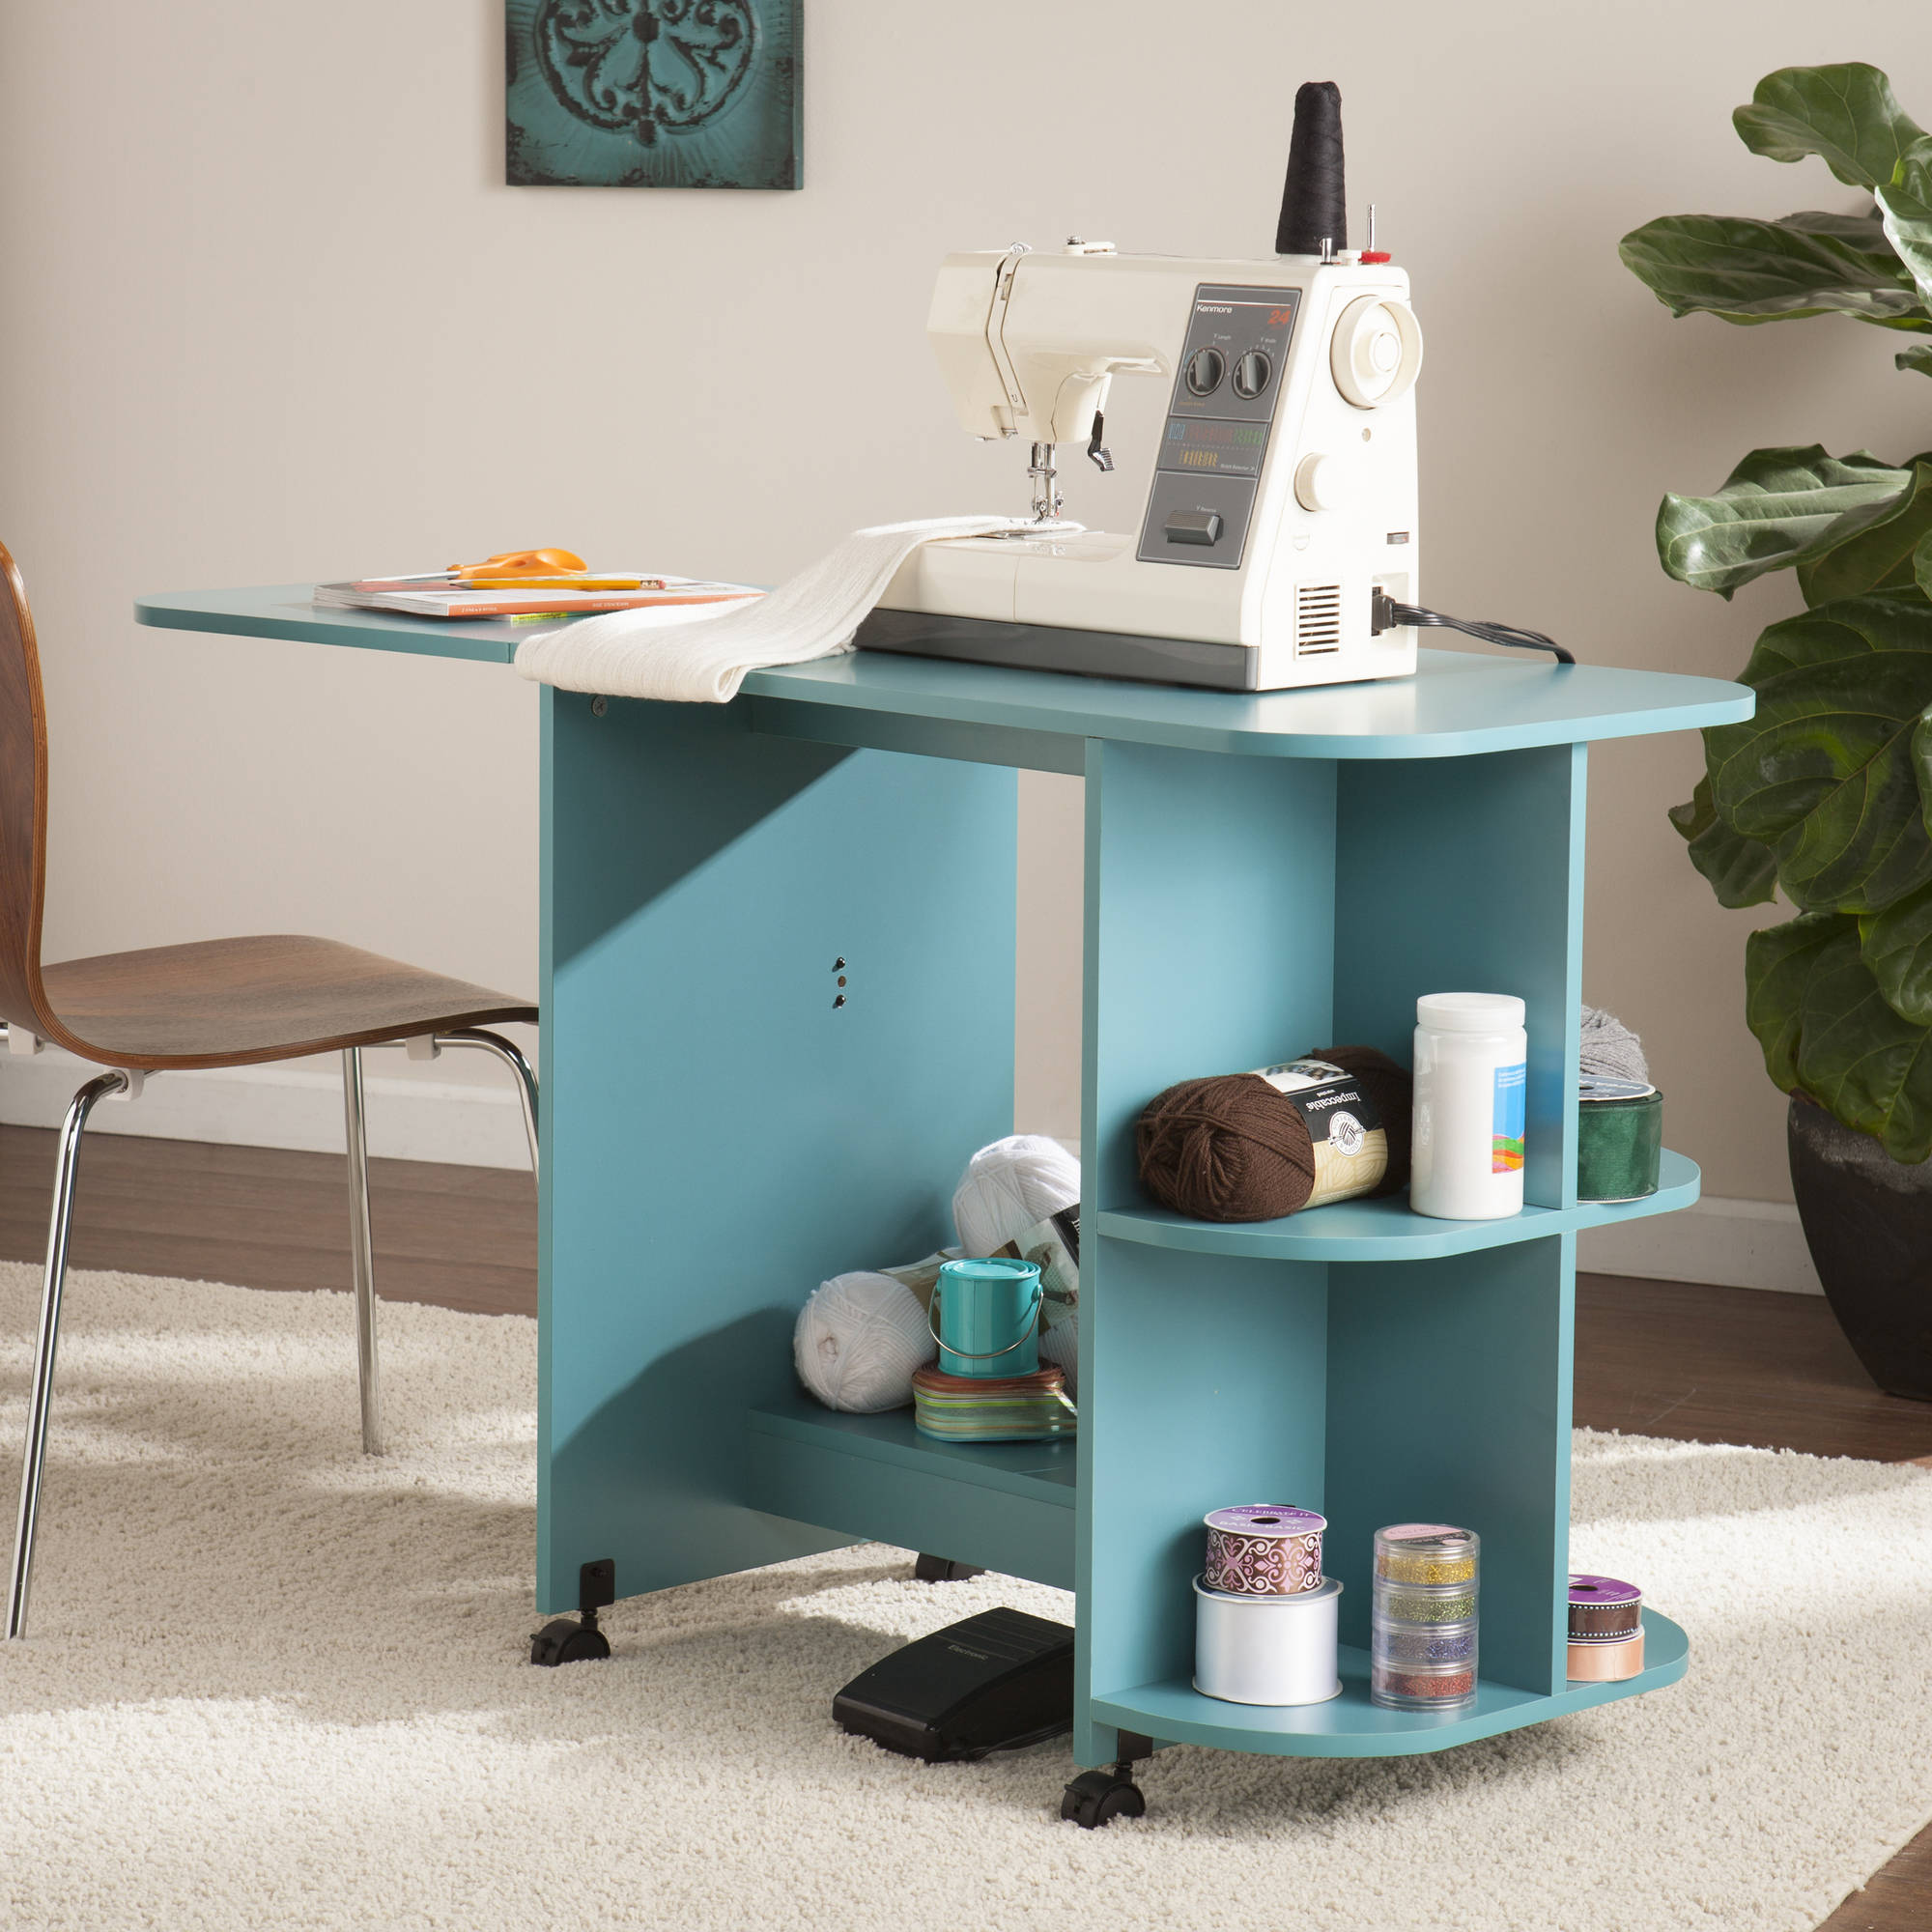 Southern Enterprises Sewdol Expandable Rolling Sewing Table/Craft  Station,Turquoise